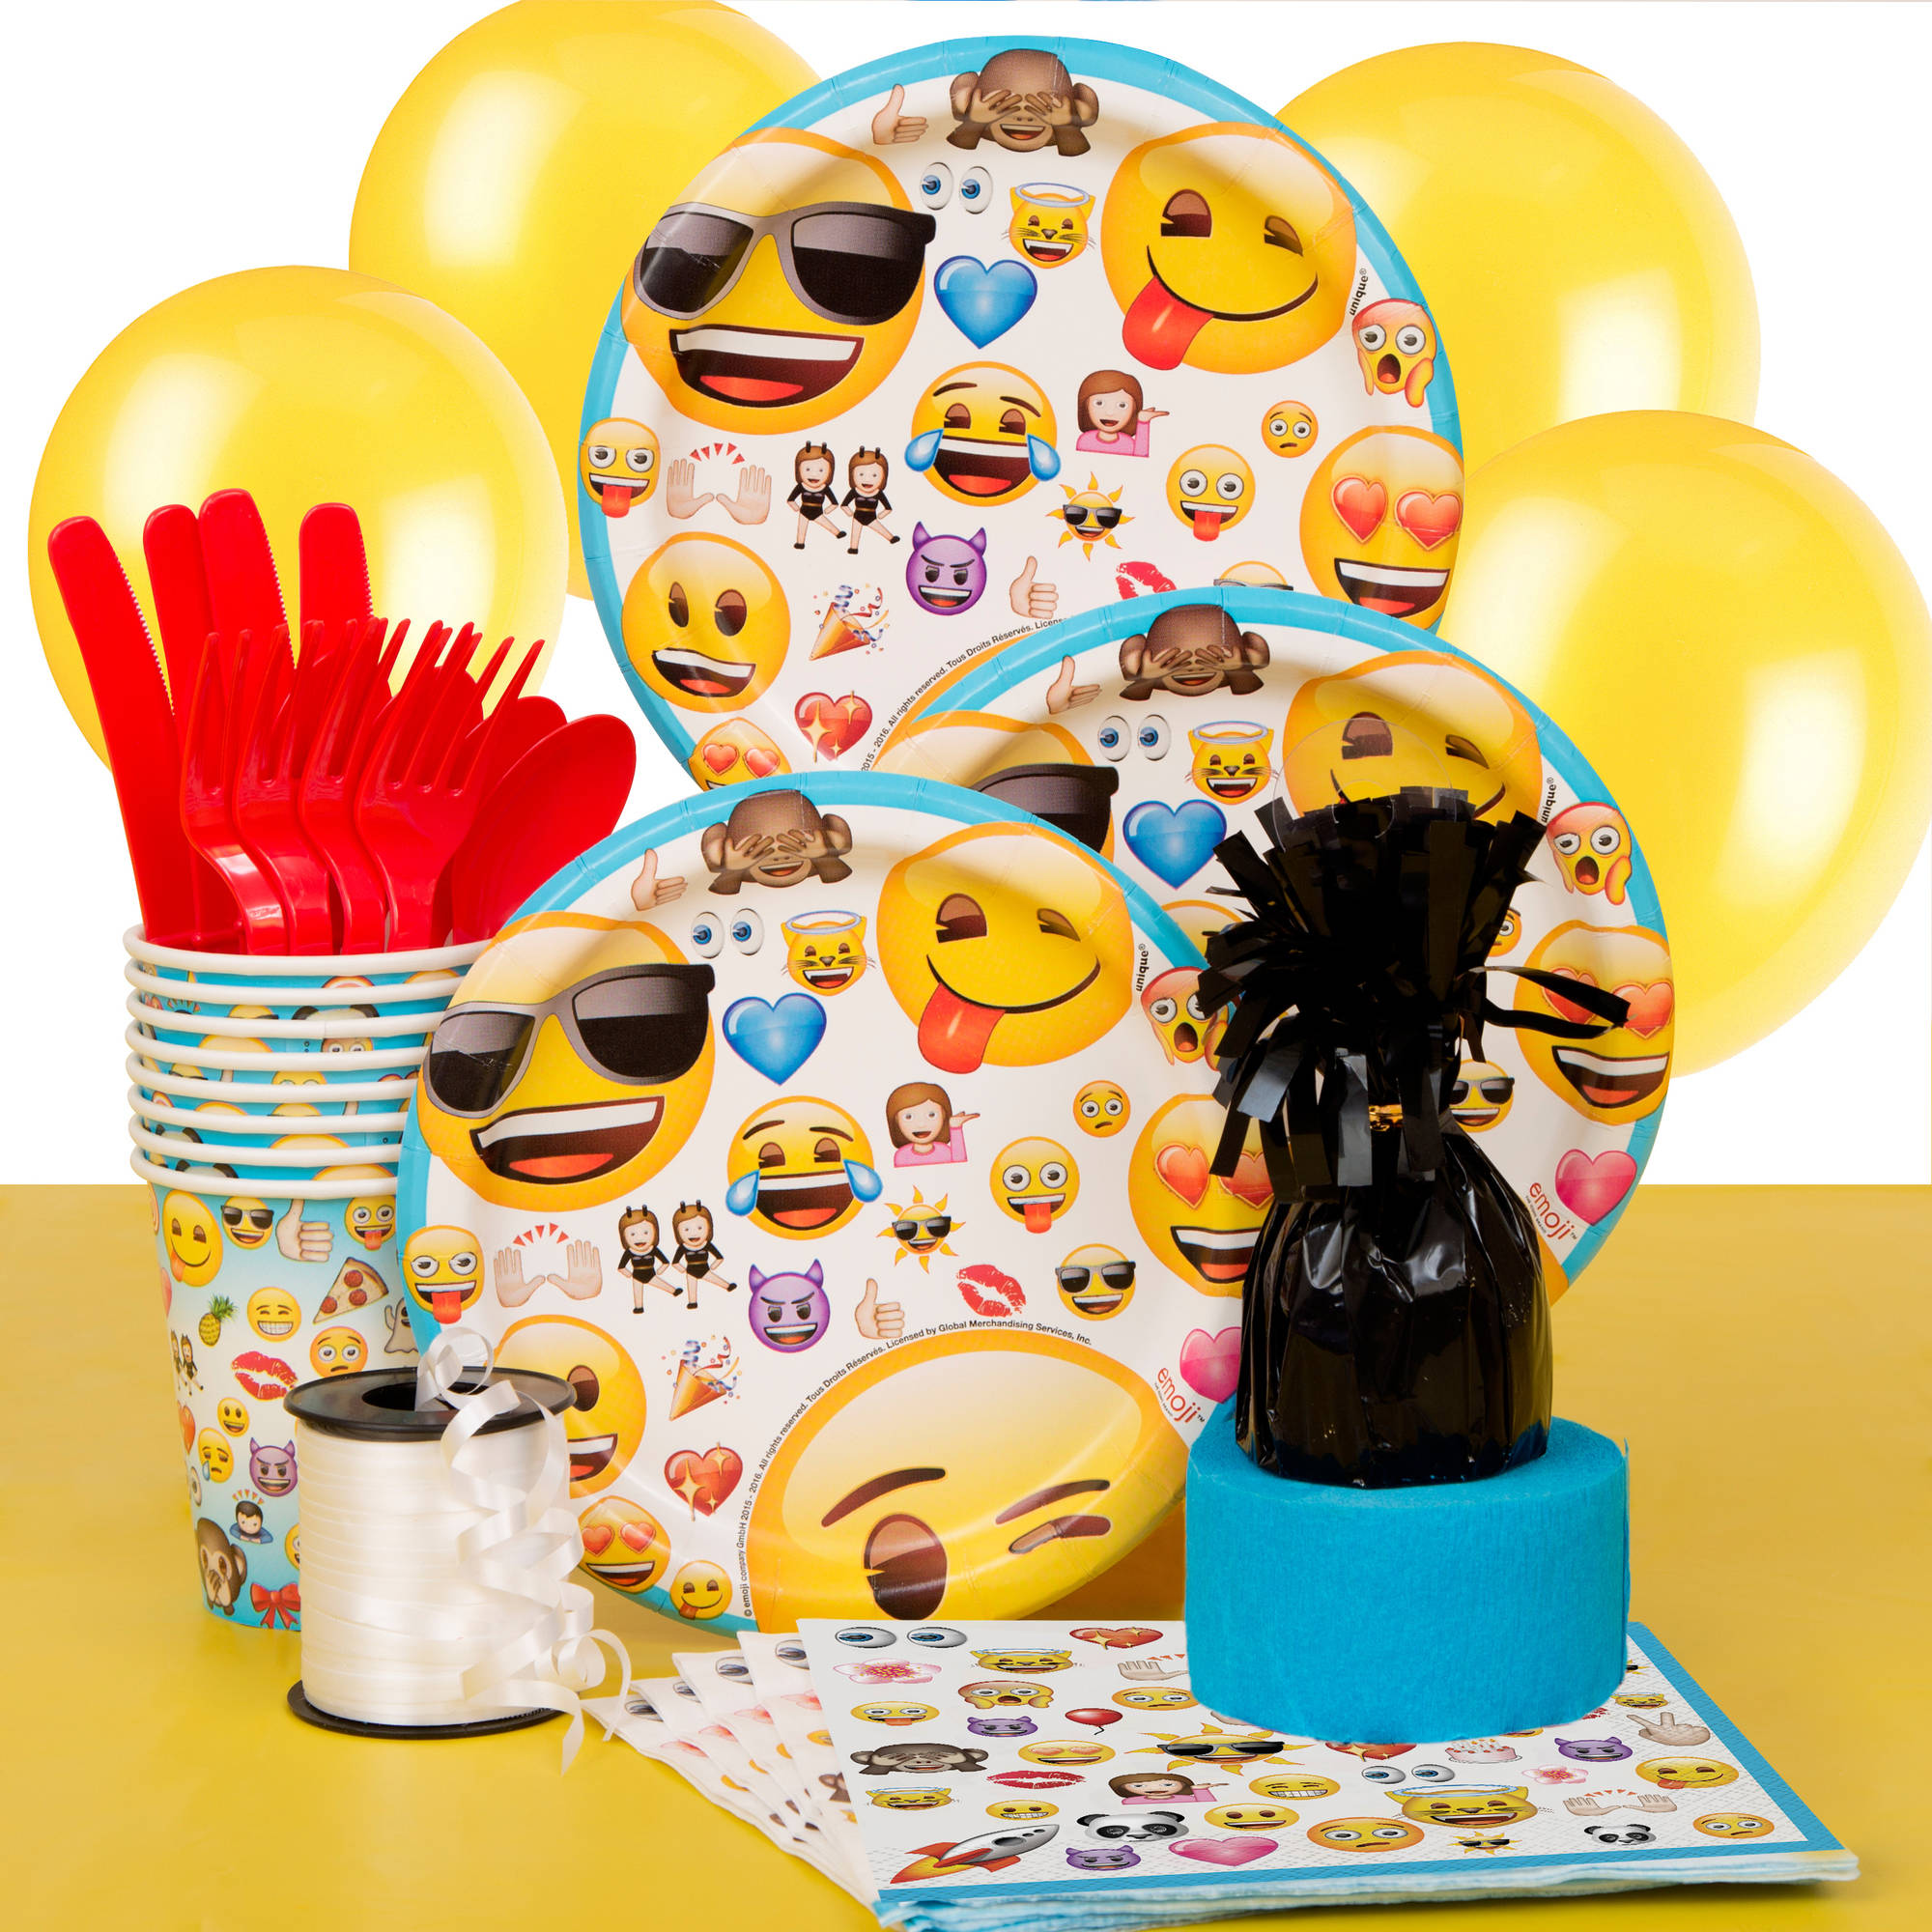 Emoji Party Supplies Kit for 8 - Walmart.com